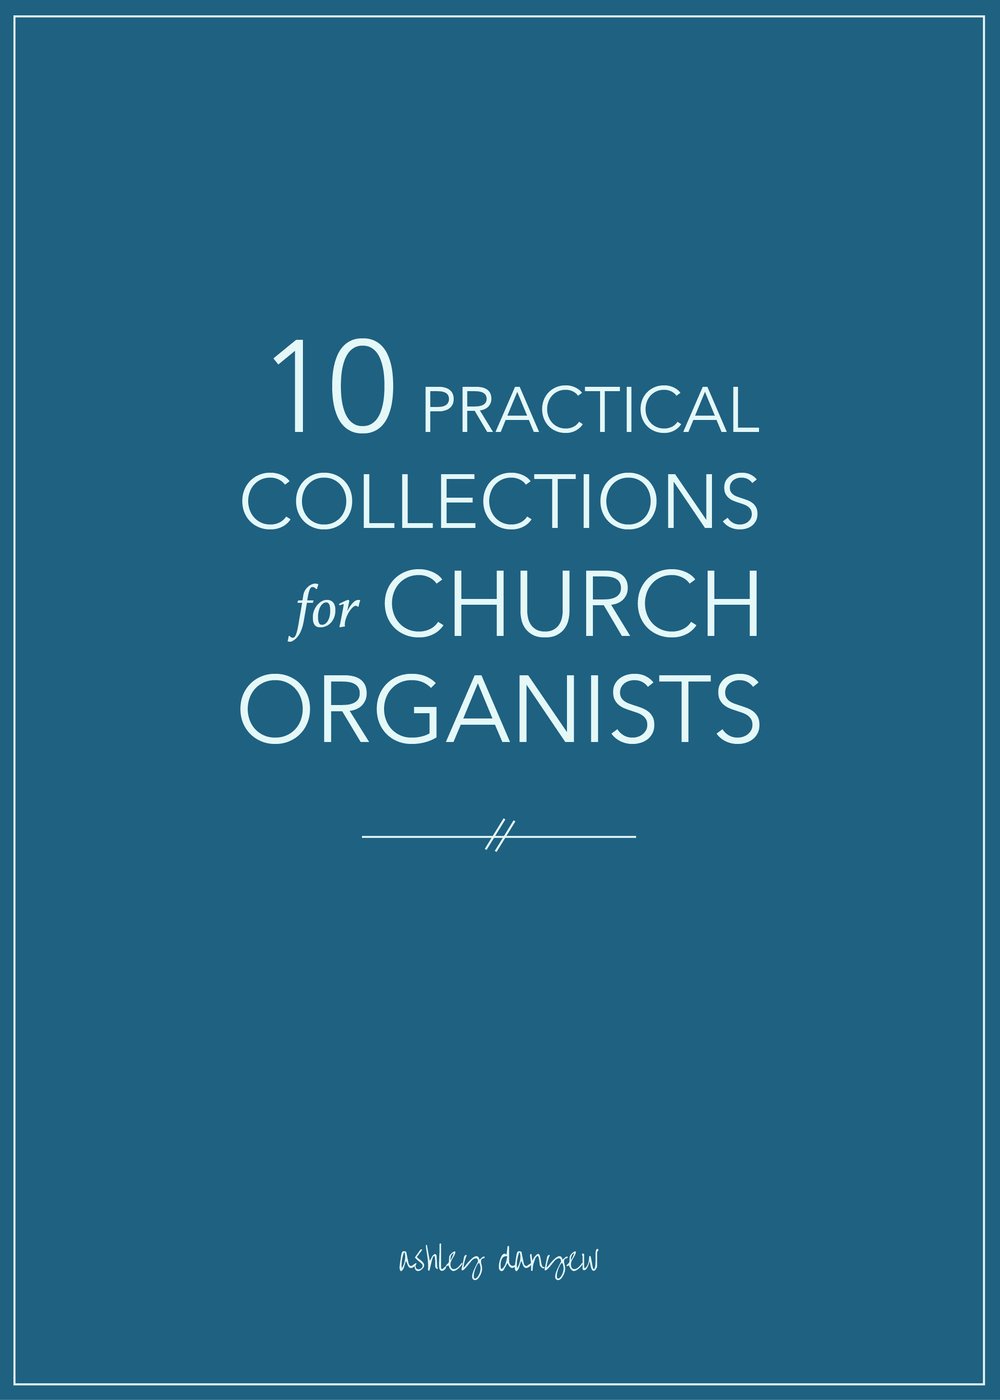 Copy of 10 Practical Collections for Church Organists